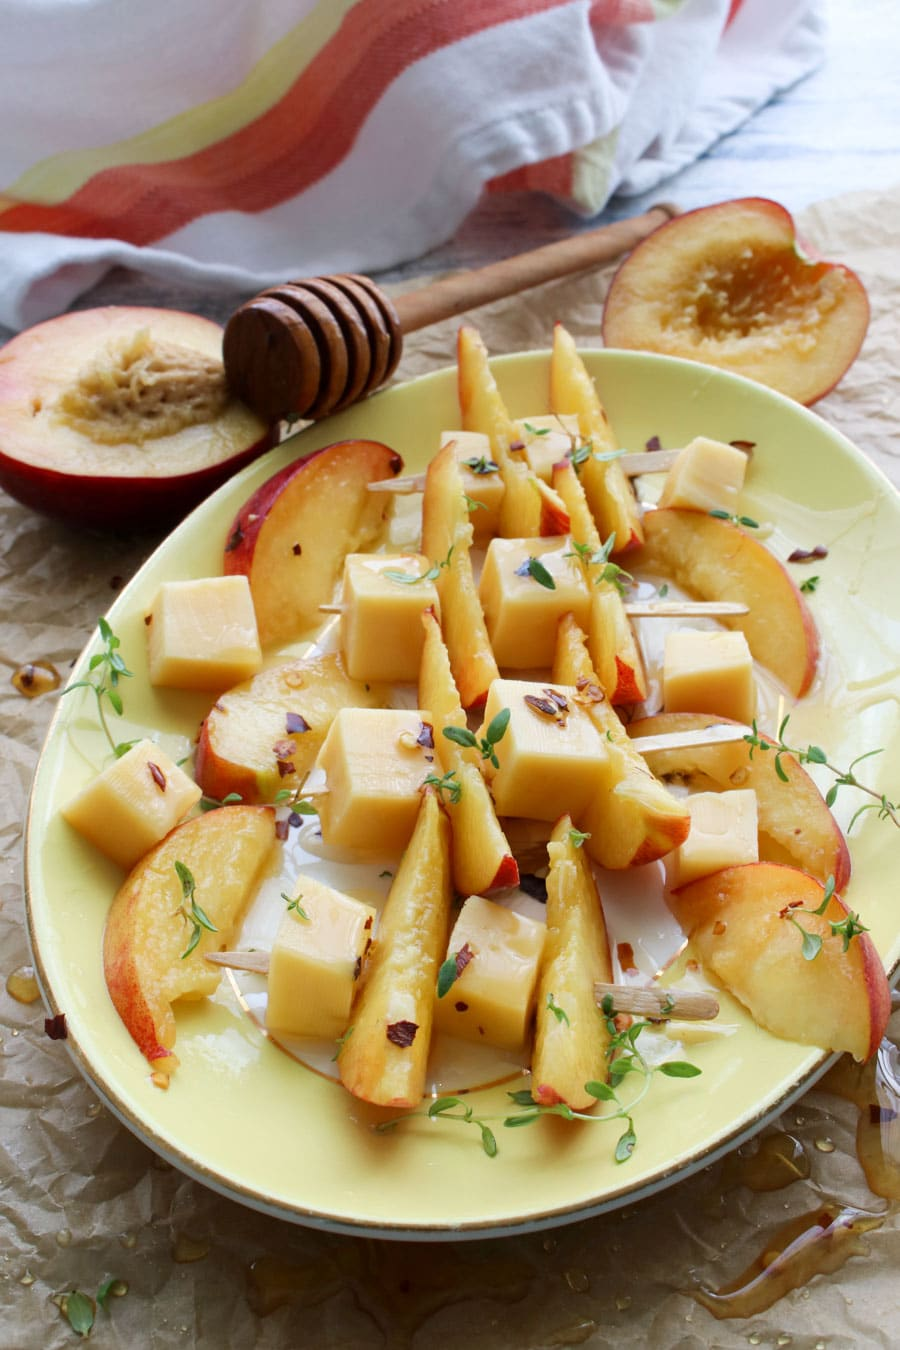 Skewers of gouda cheese, peach slices, and hot honey